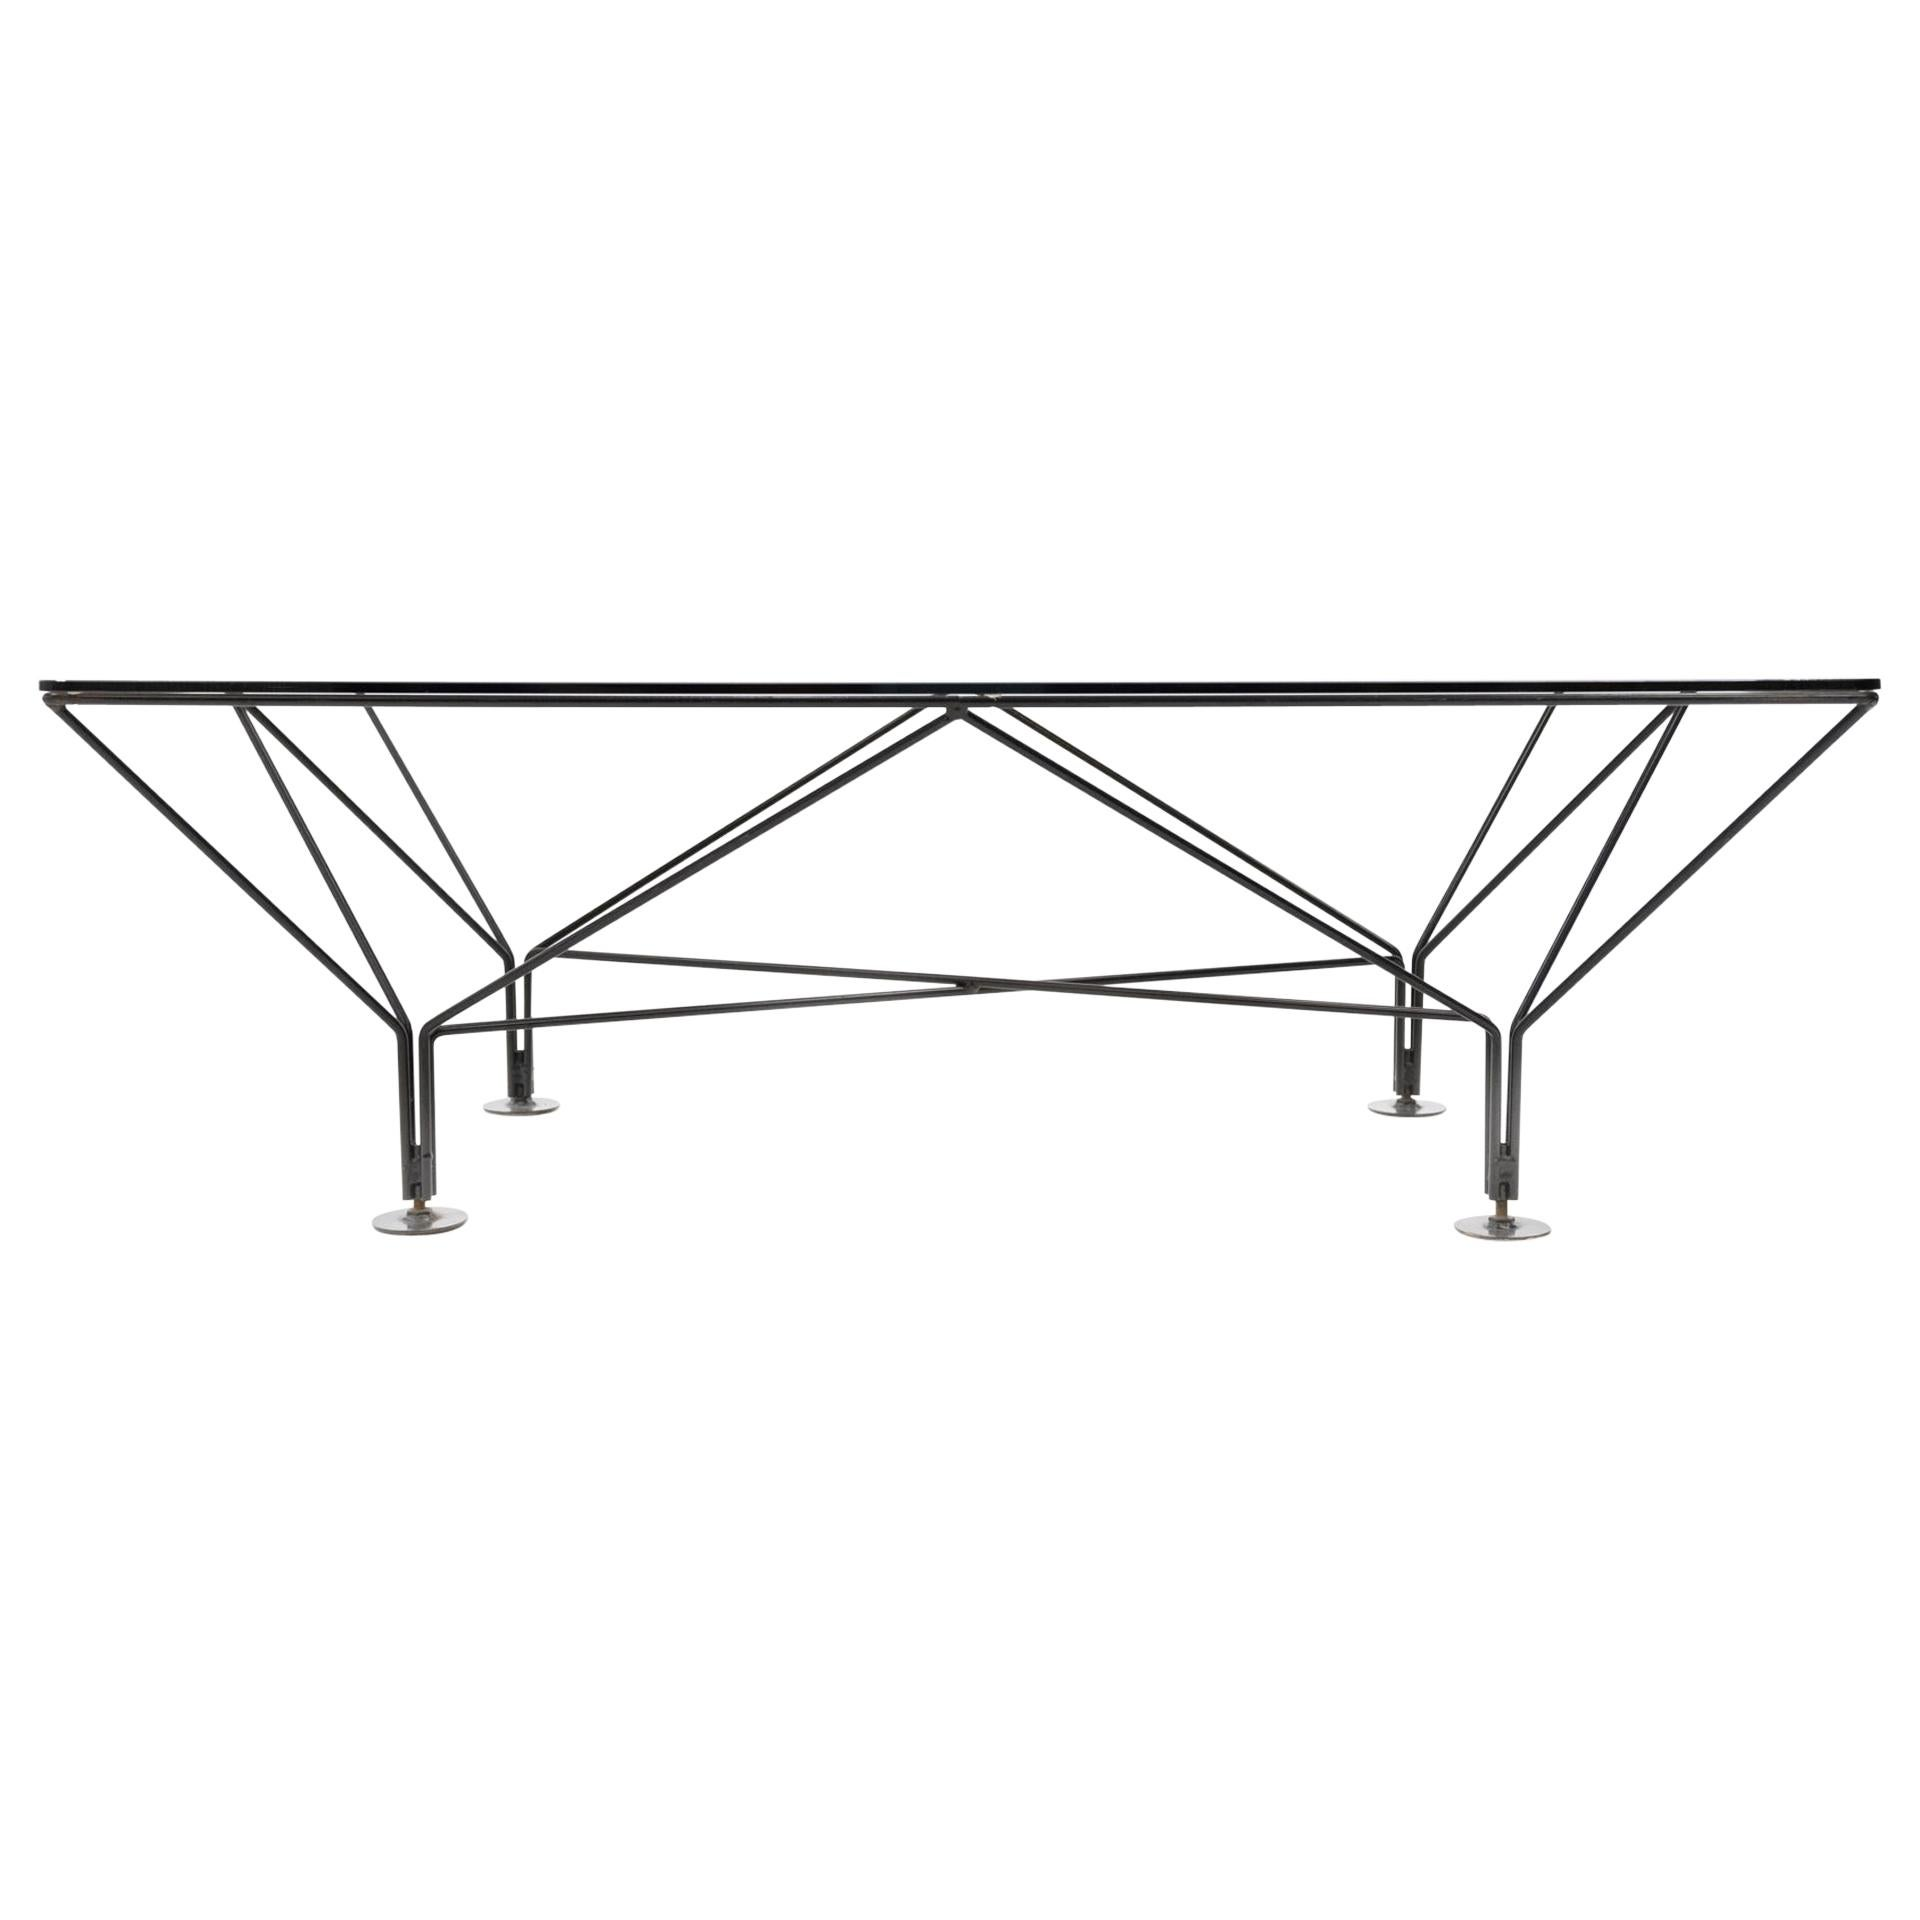 Paolo Piva Style Smoked Glass Coffee Table, 1980s